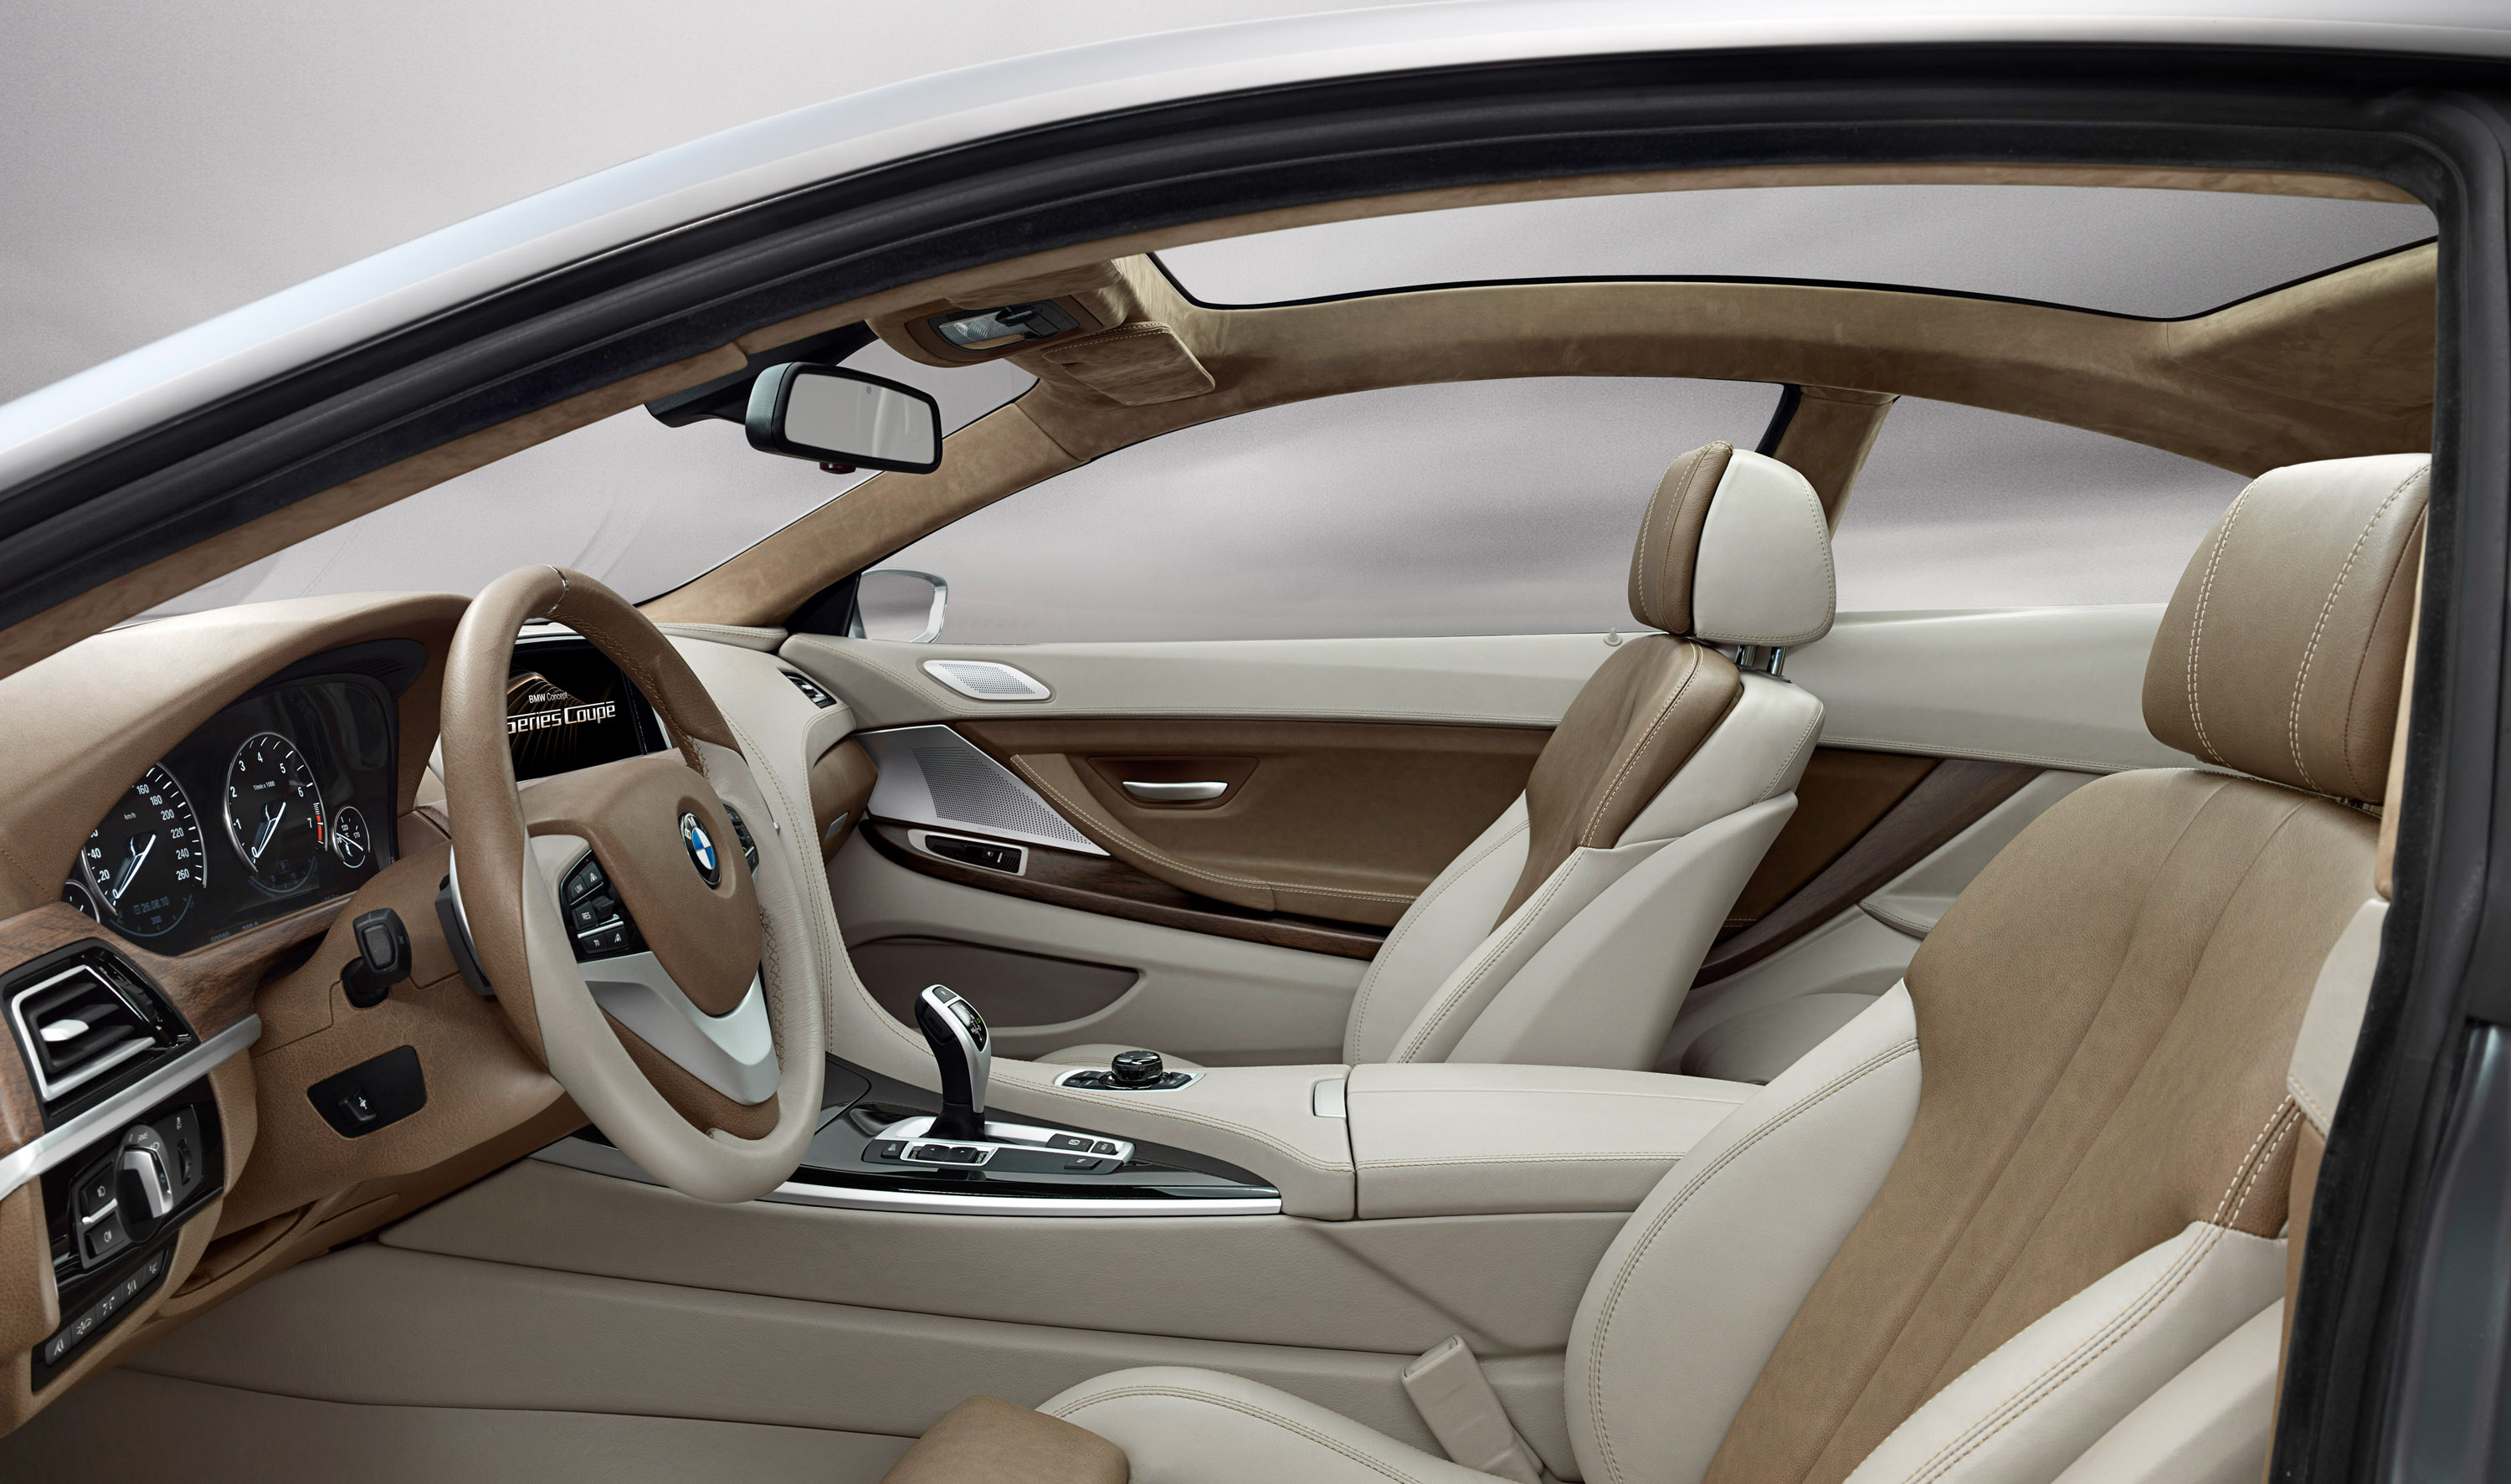 BMW Concept 6 Series Coupe - Picture 42365